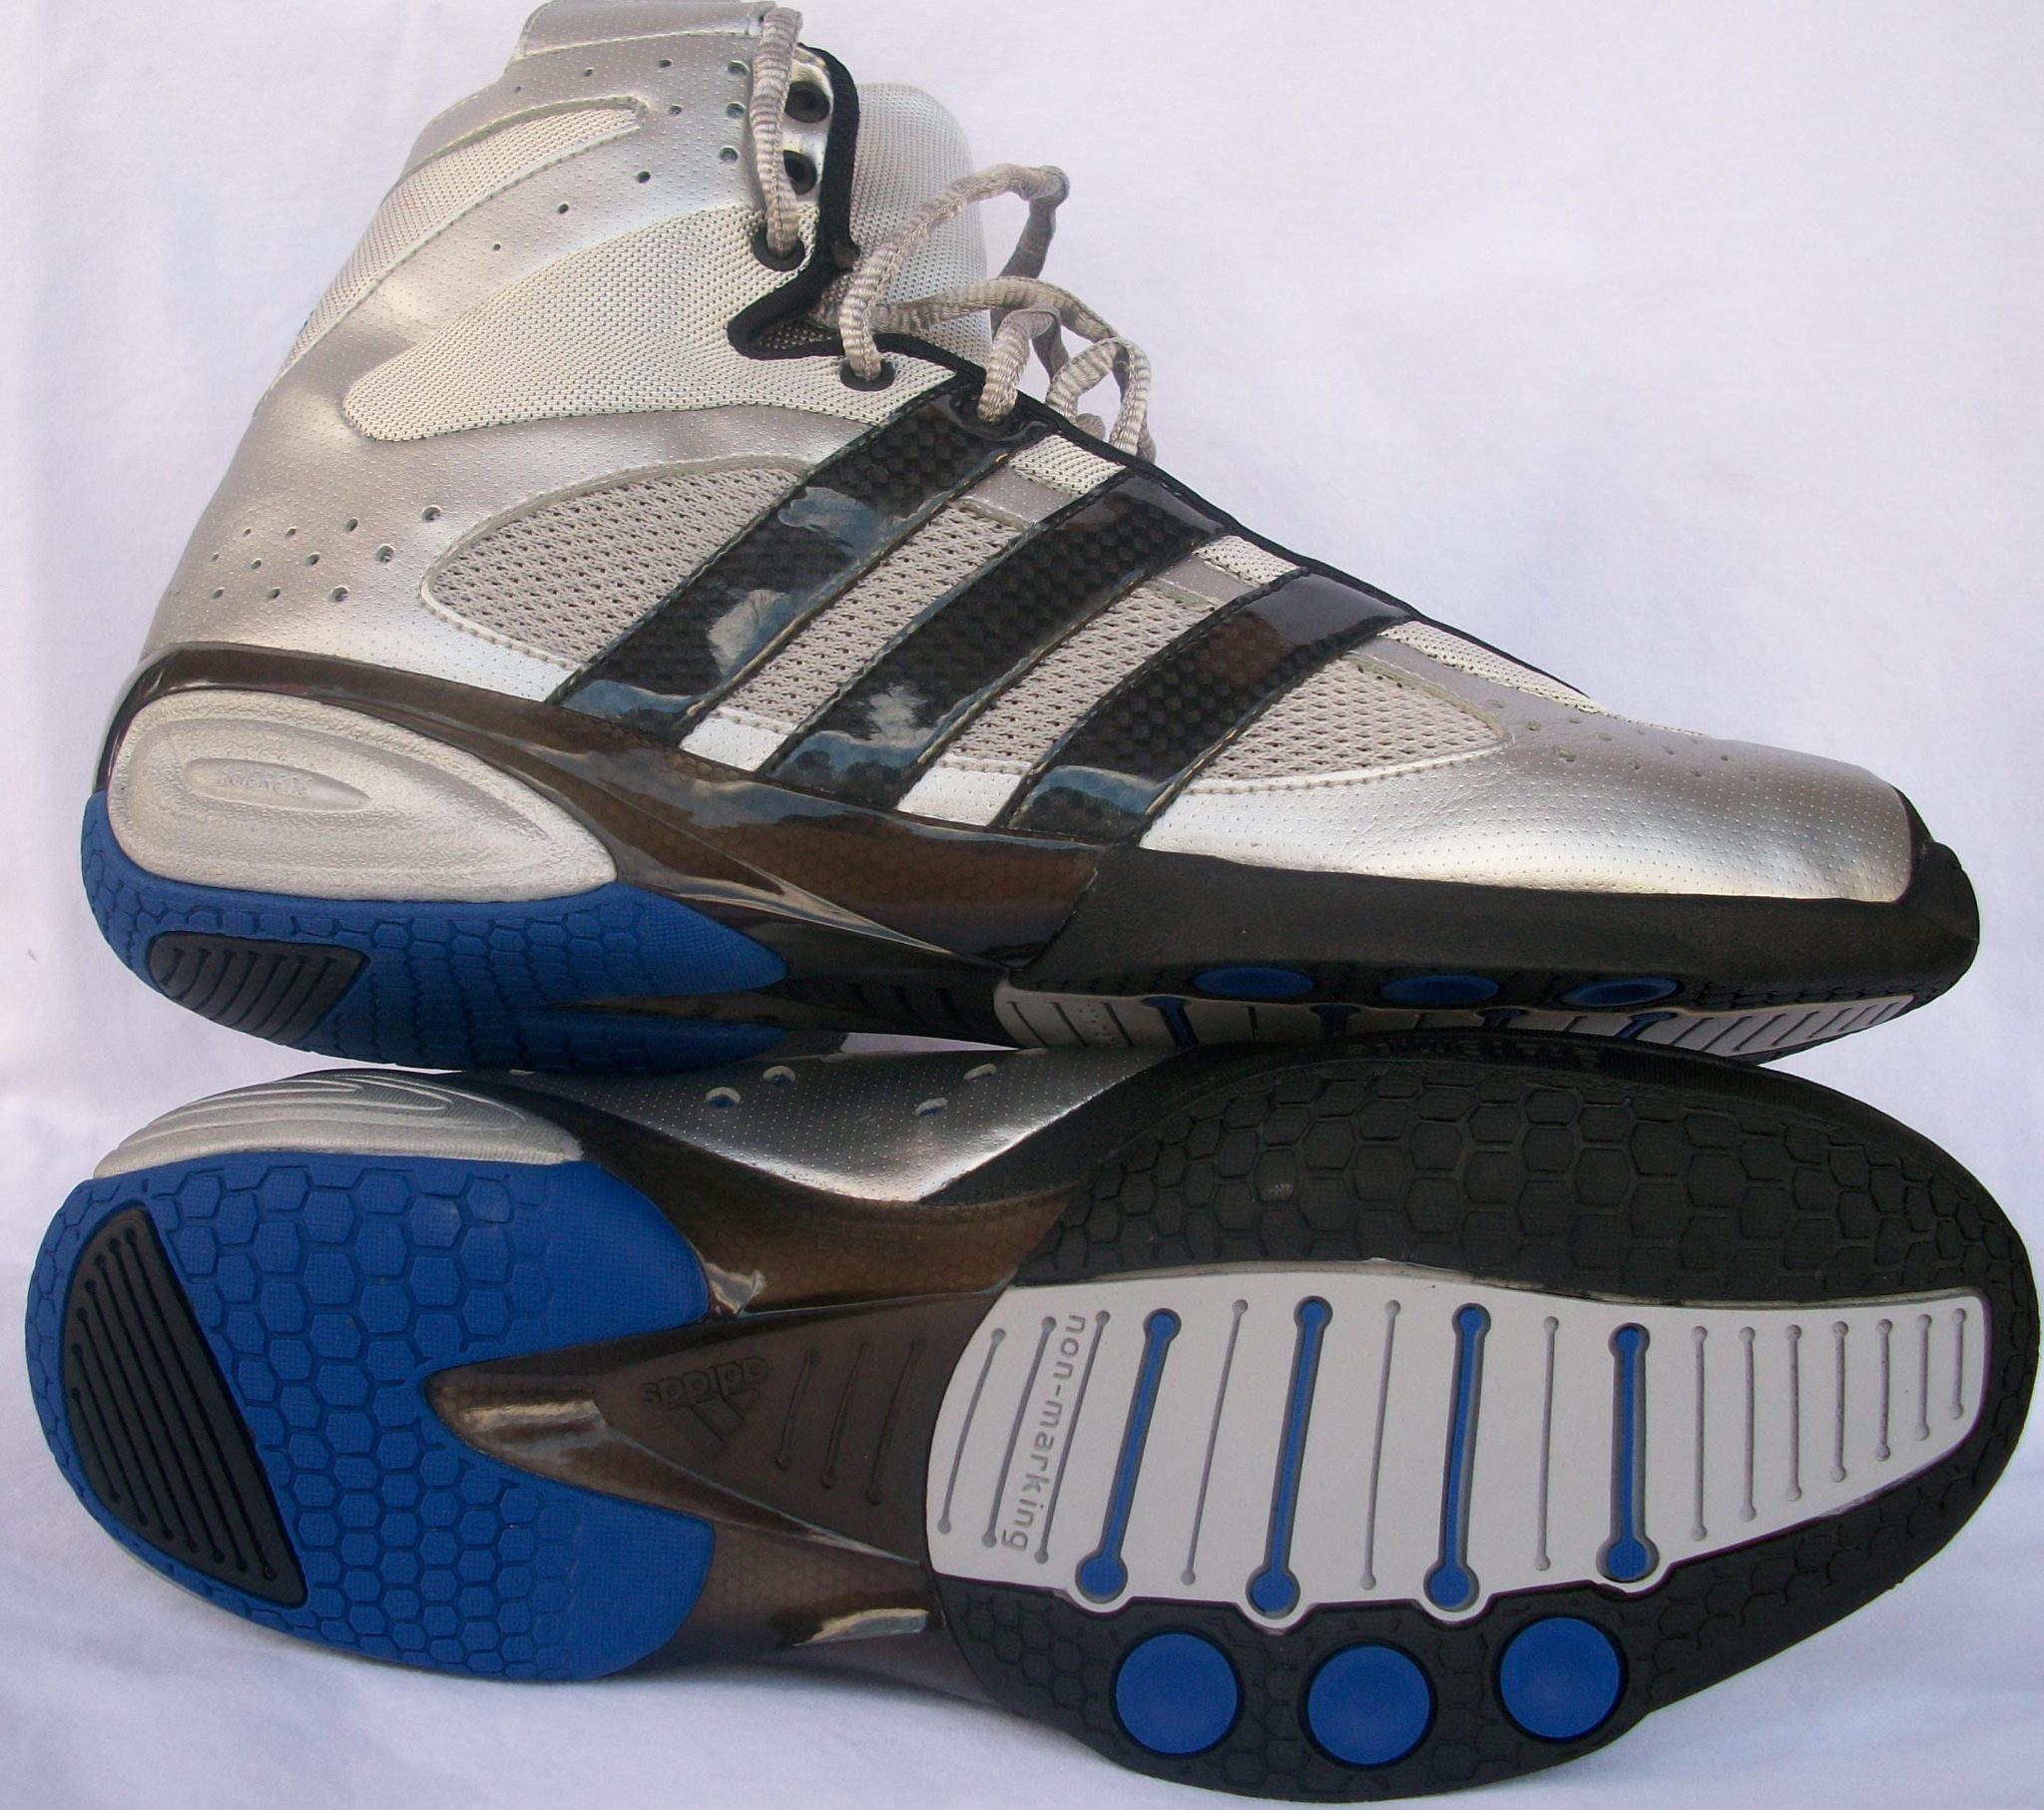 Adidas High Top Fencing Shoes